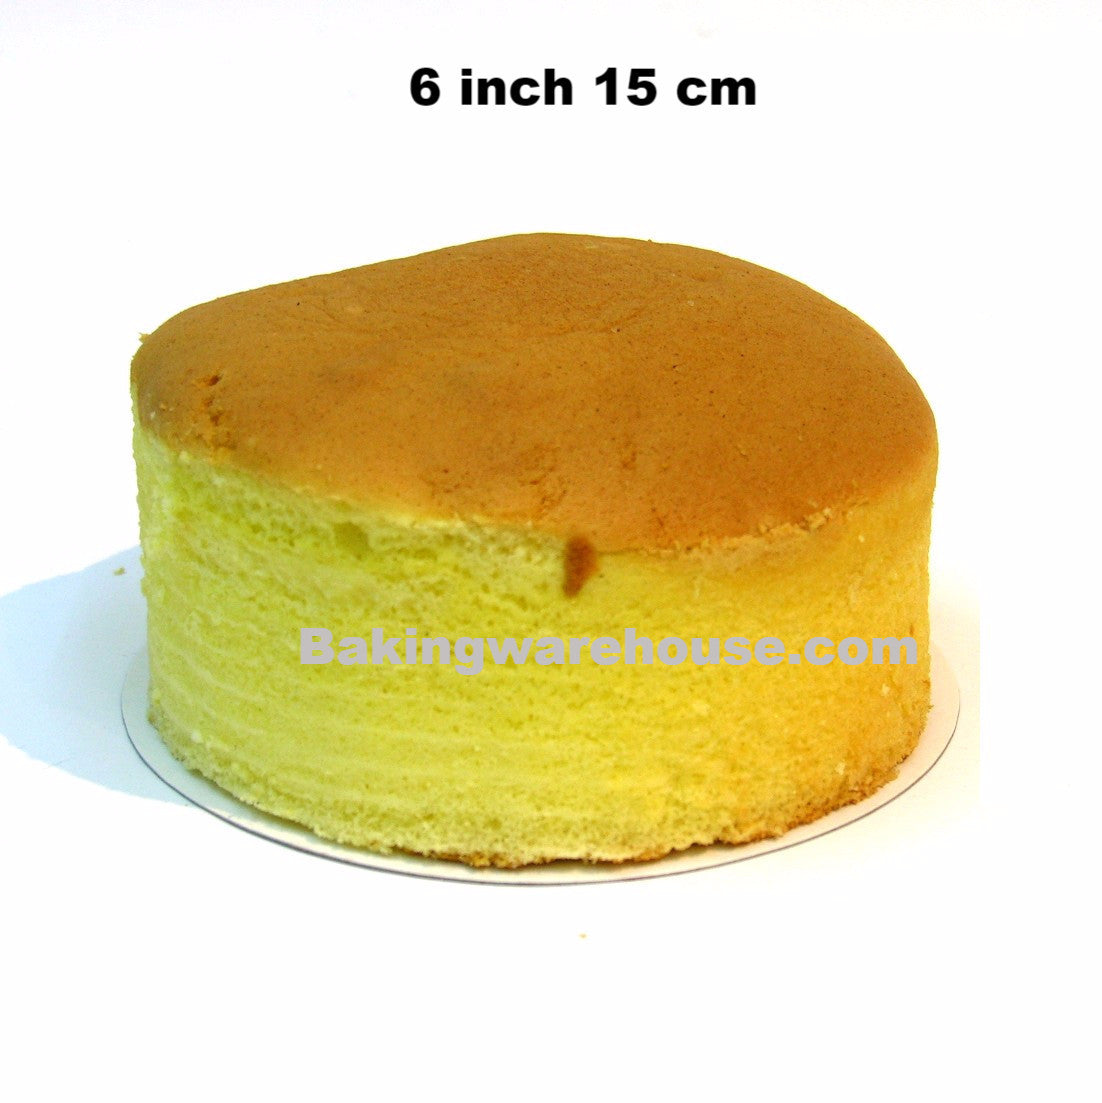 Softness sponge cake*self pick up only